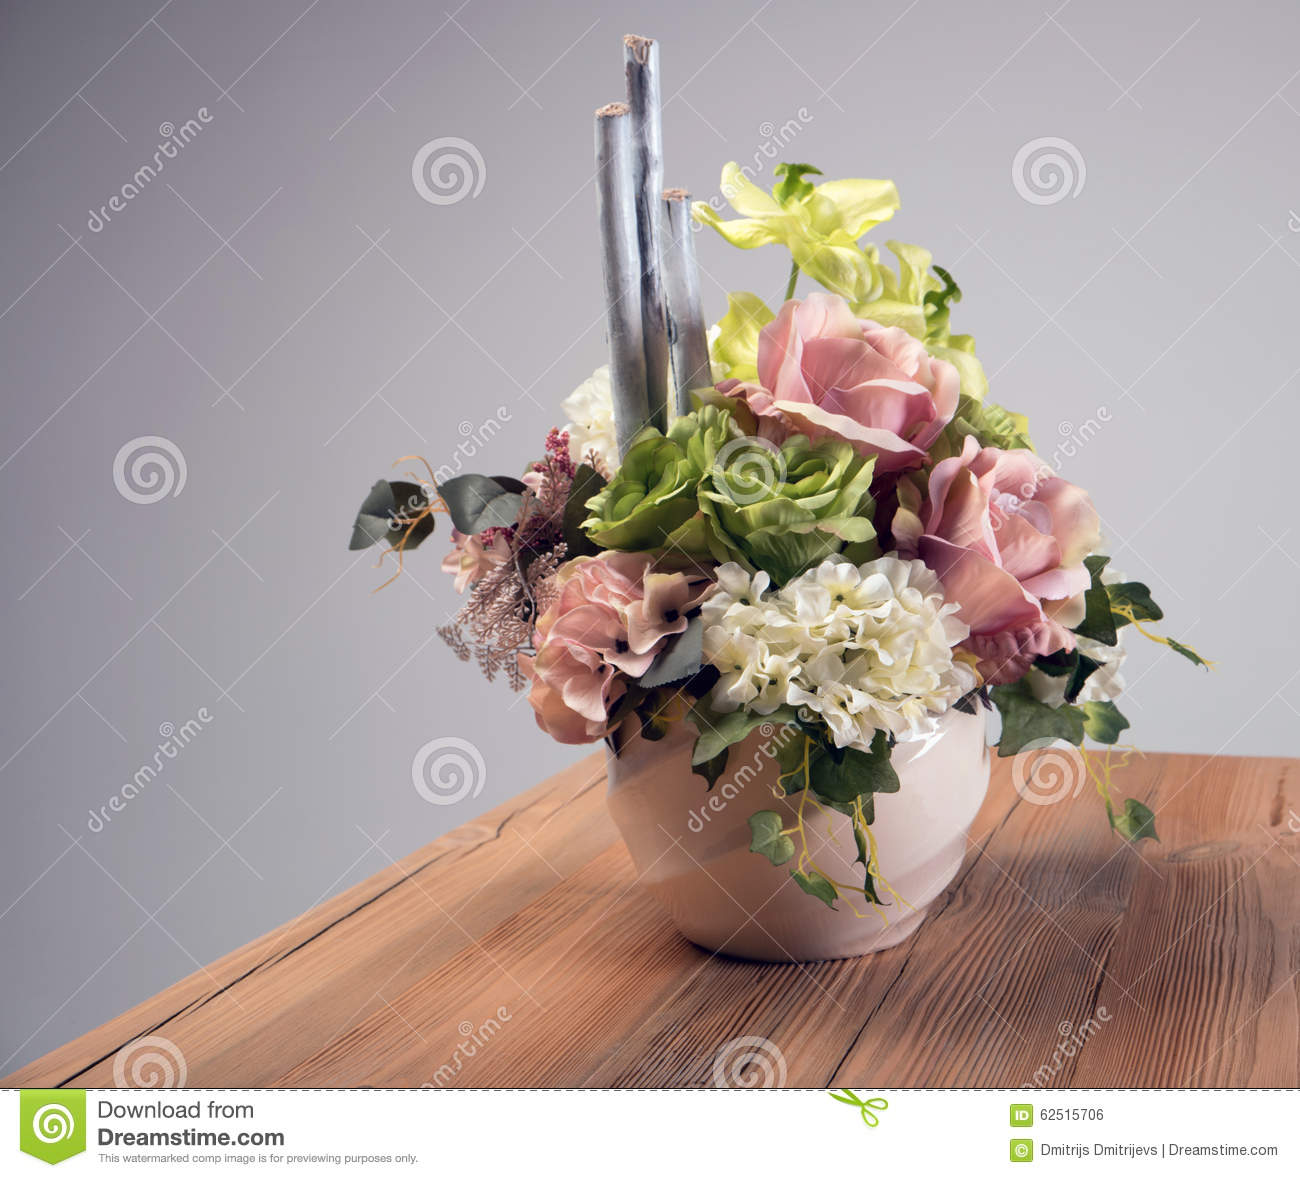 bouquet de fleurs artificielles dans le vase sur la table. Black Bedroom Furniture Sets. Home Design Ideas